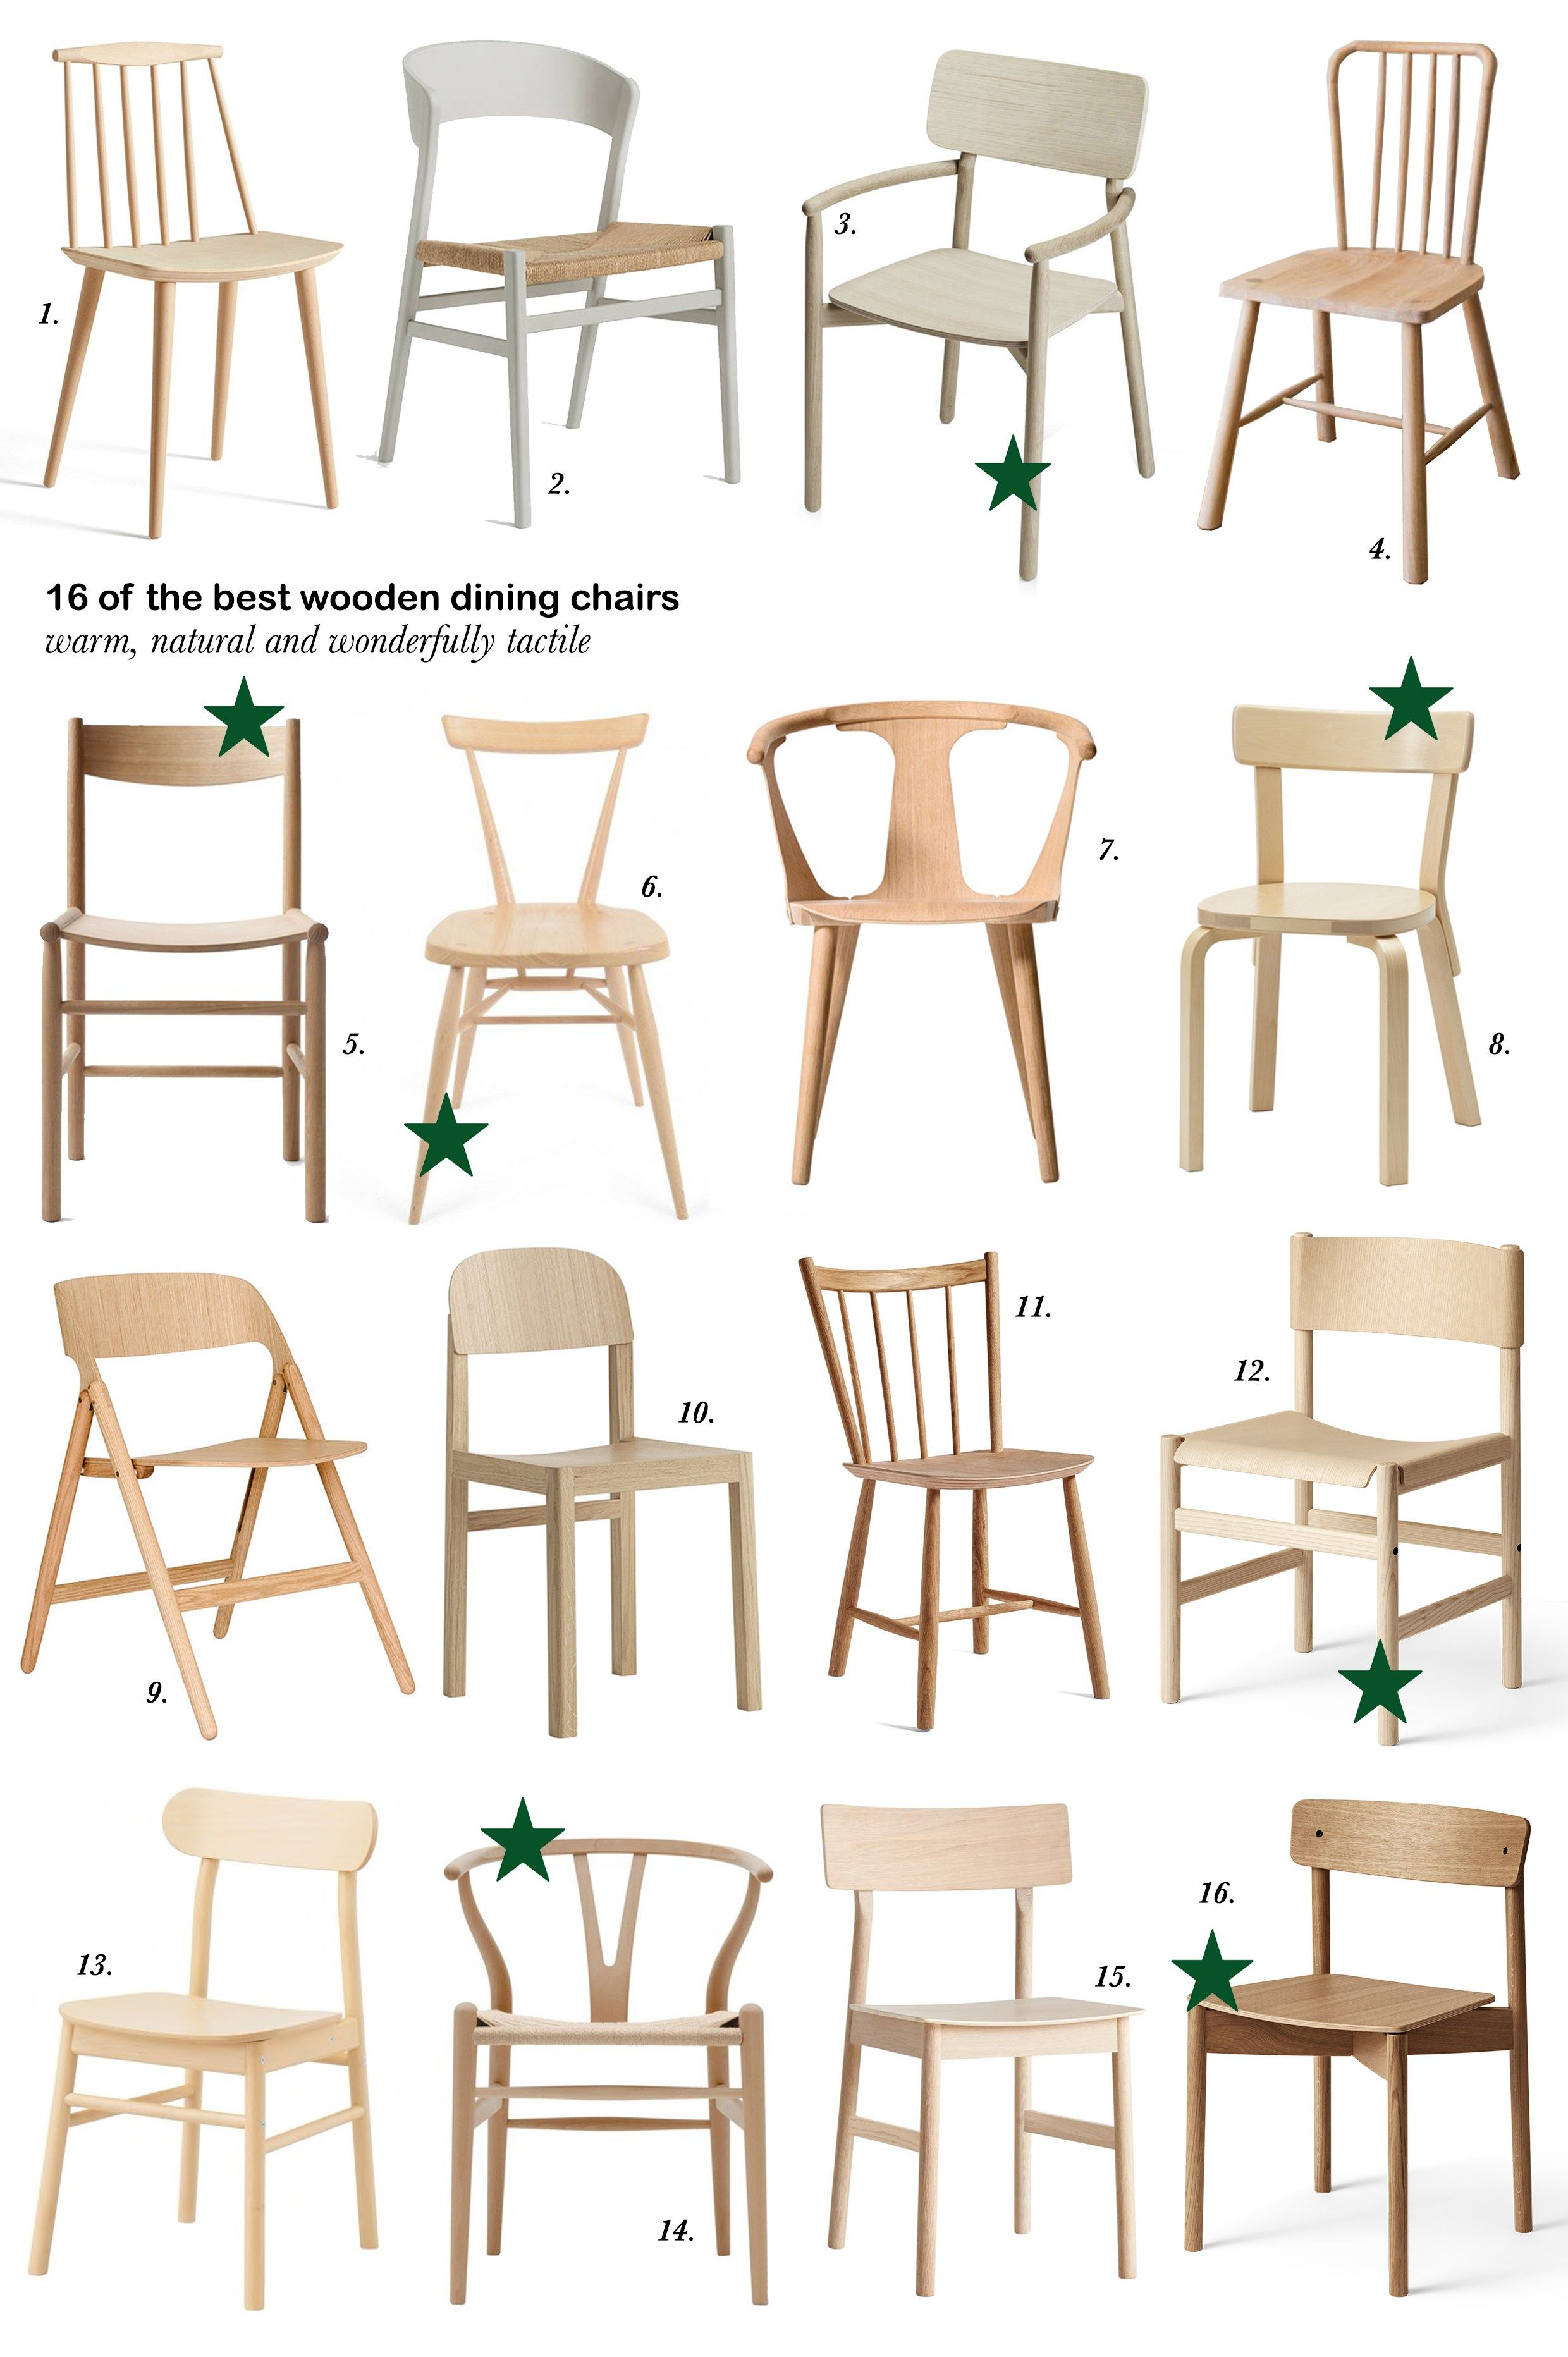 16 Of The Best Simple Wooden Dining Chairs Cate St Hill Wooden Dining Chairs Chair Design Wooden Wood Chair Design